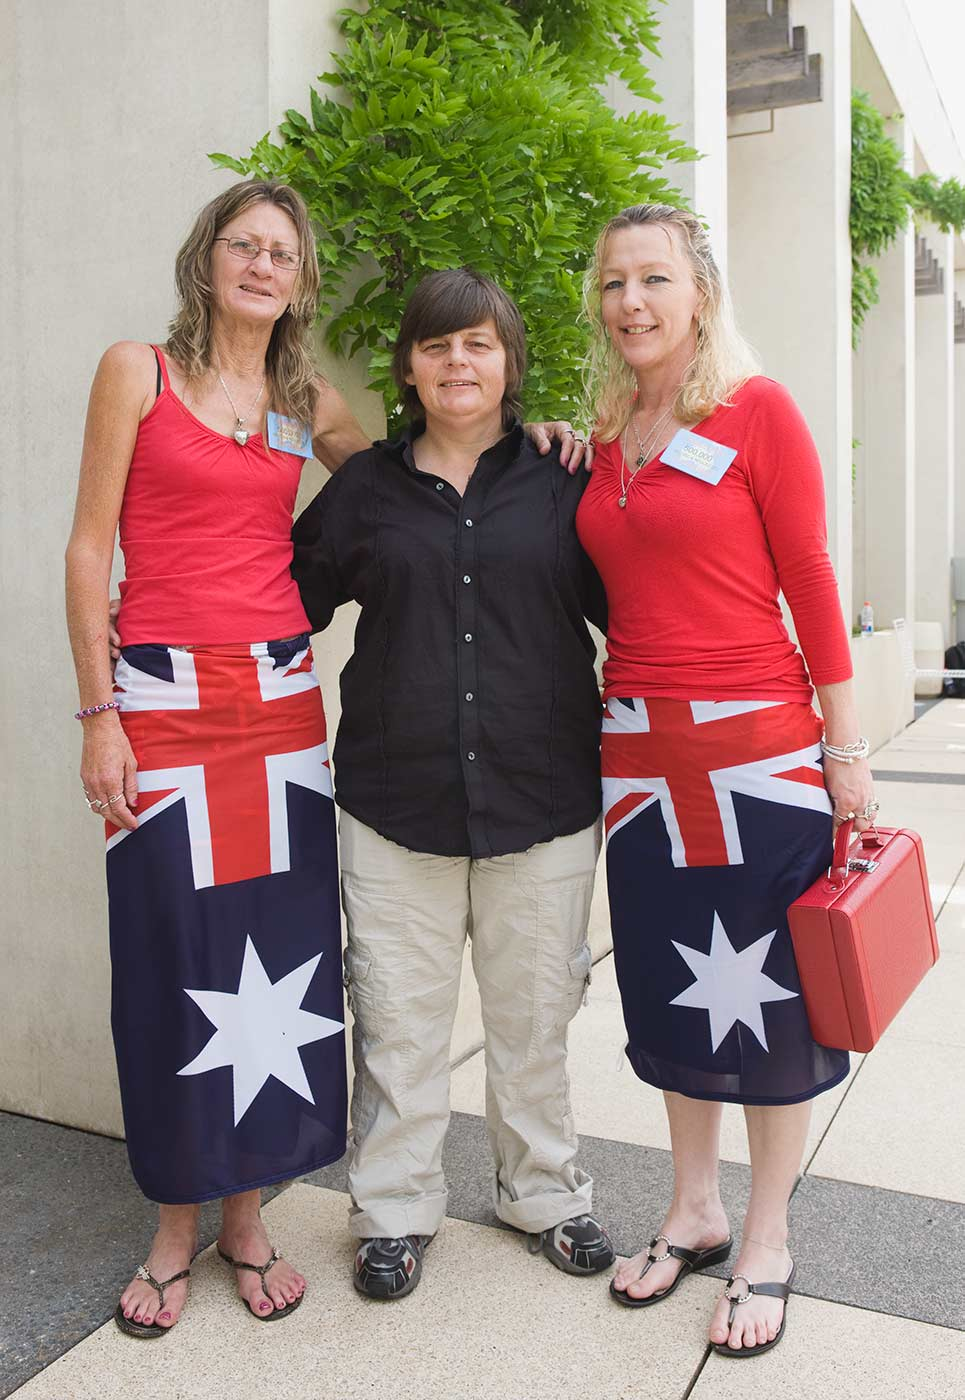 Colour photograph showing three women standing outside a buildling. The women on either side wear red tops and Australian flags as skirts. - click to view larger image